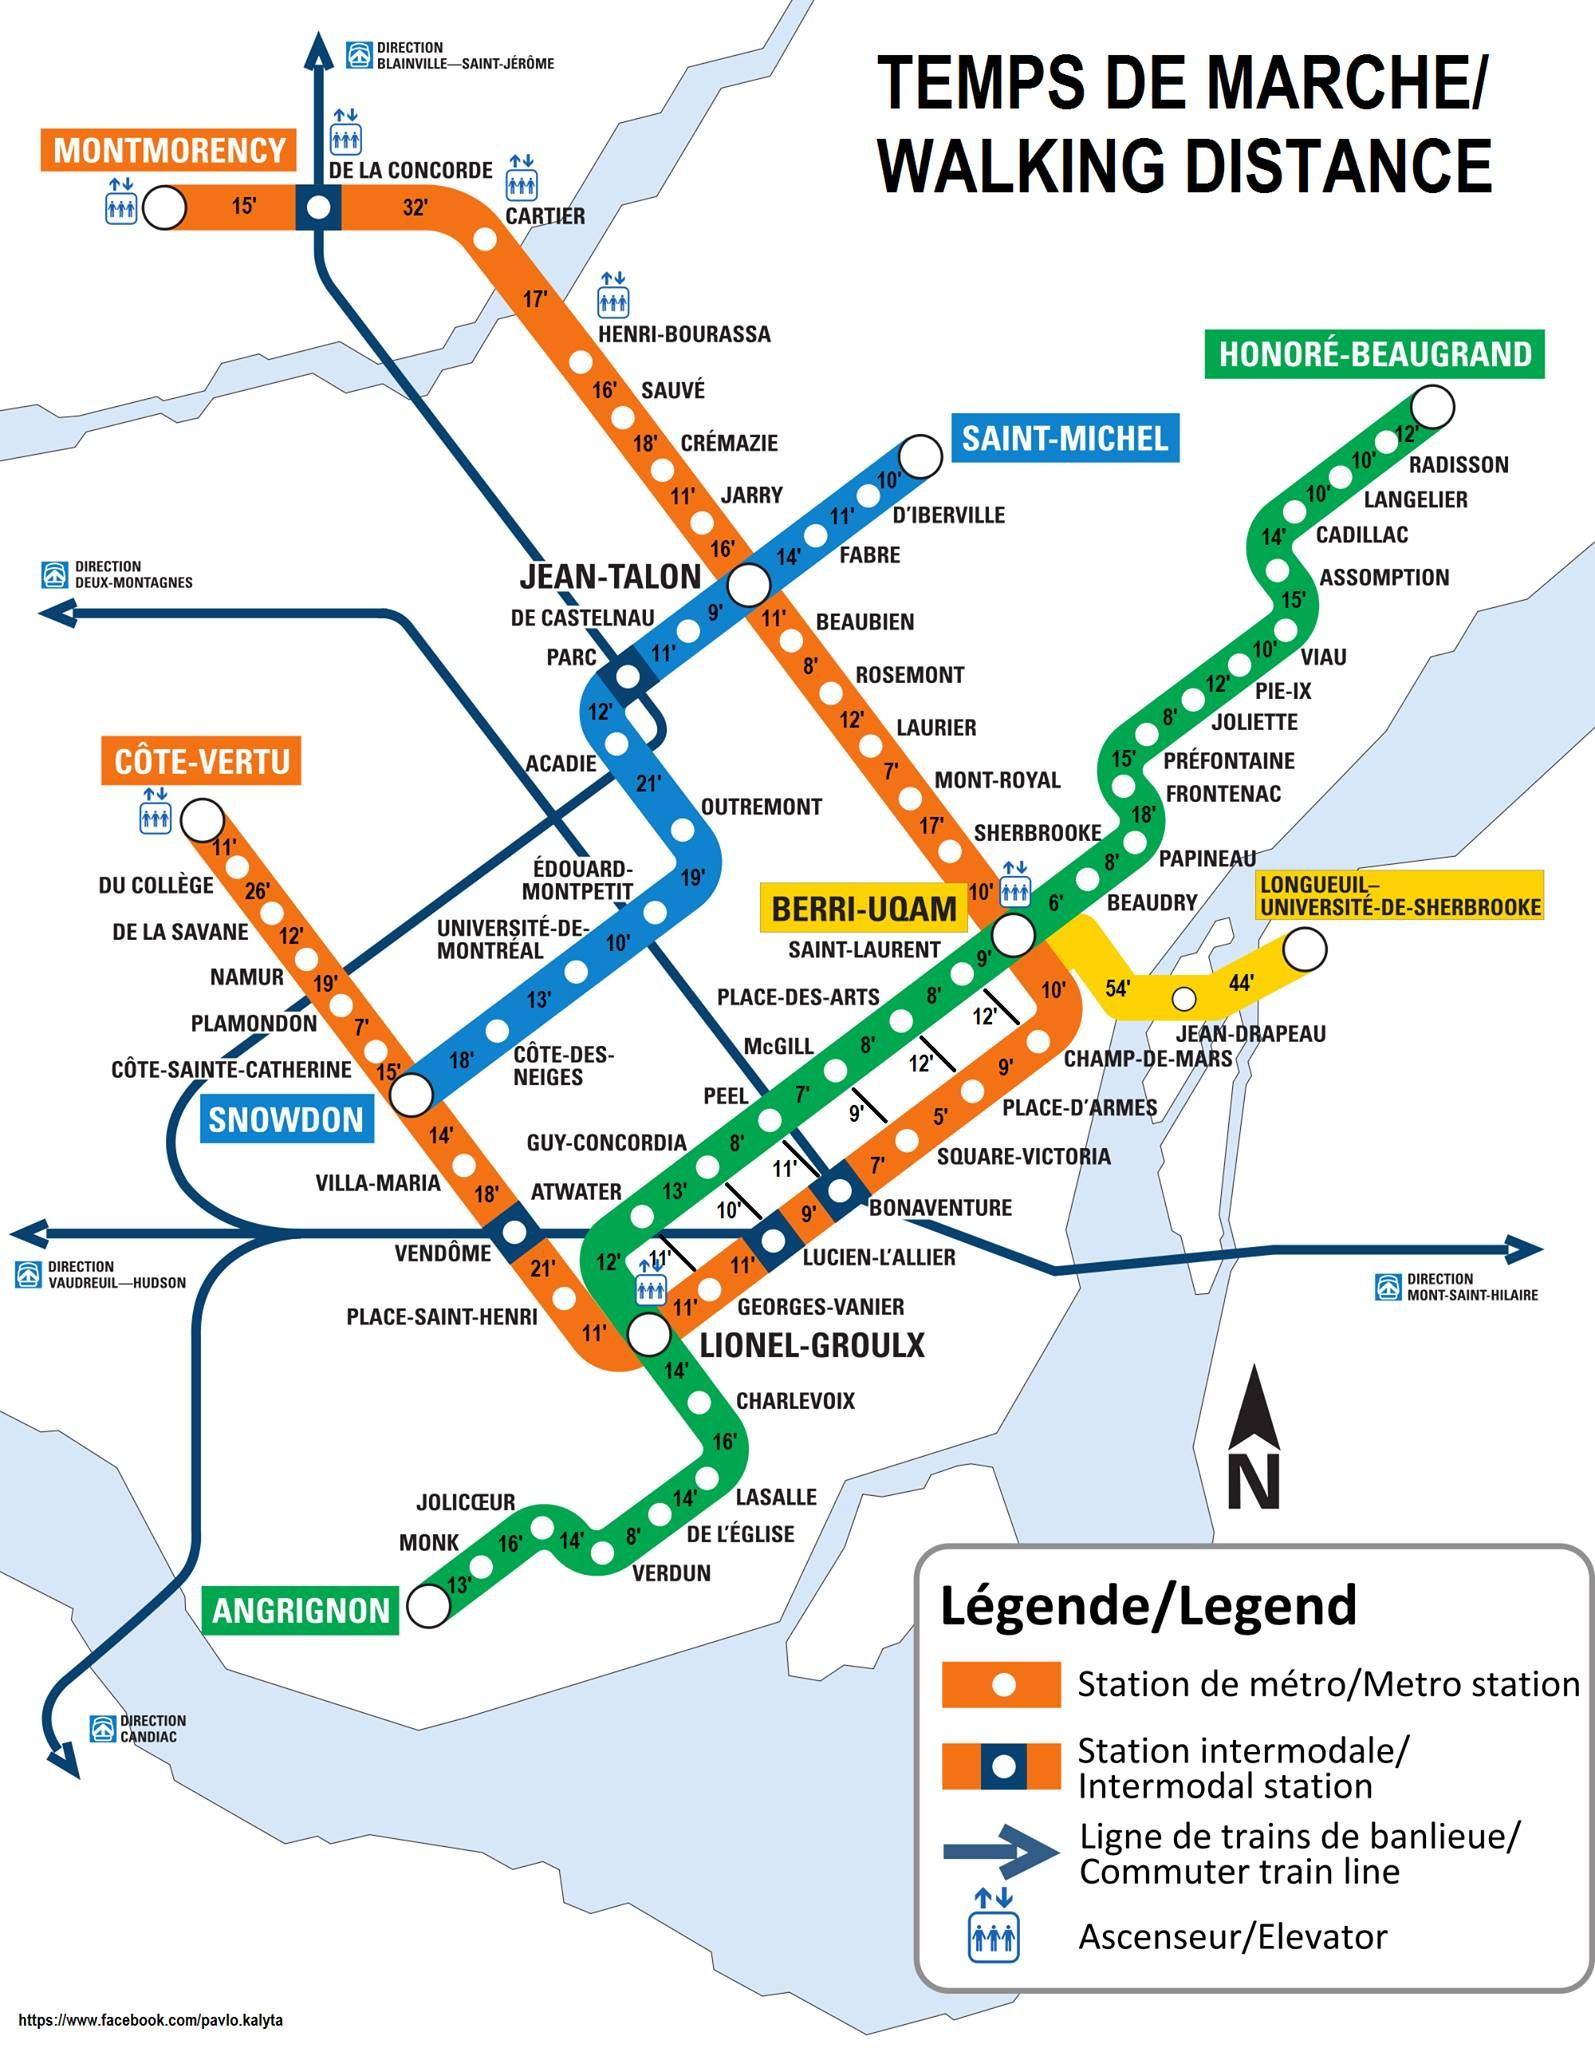 Subway Montreal Map.This Is Montreal S Walking Distance Metro Map Metro Map Subway Map Montreal Travel